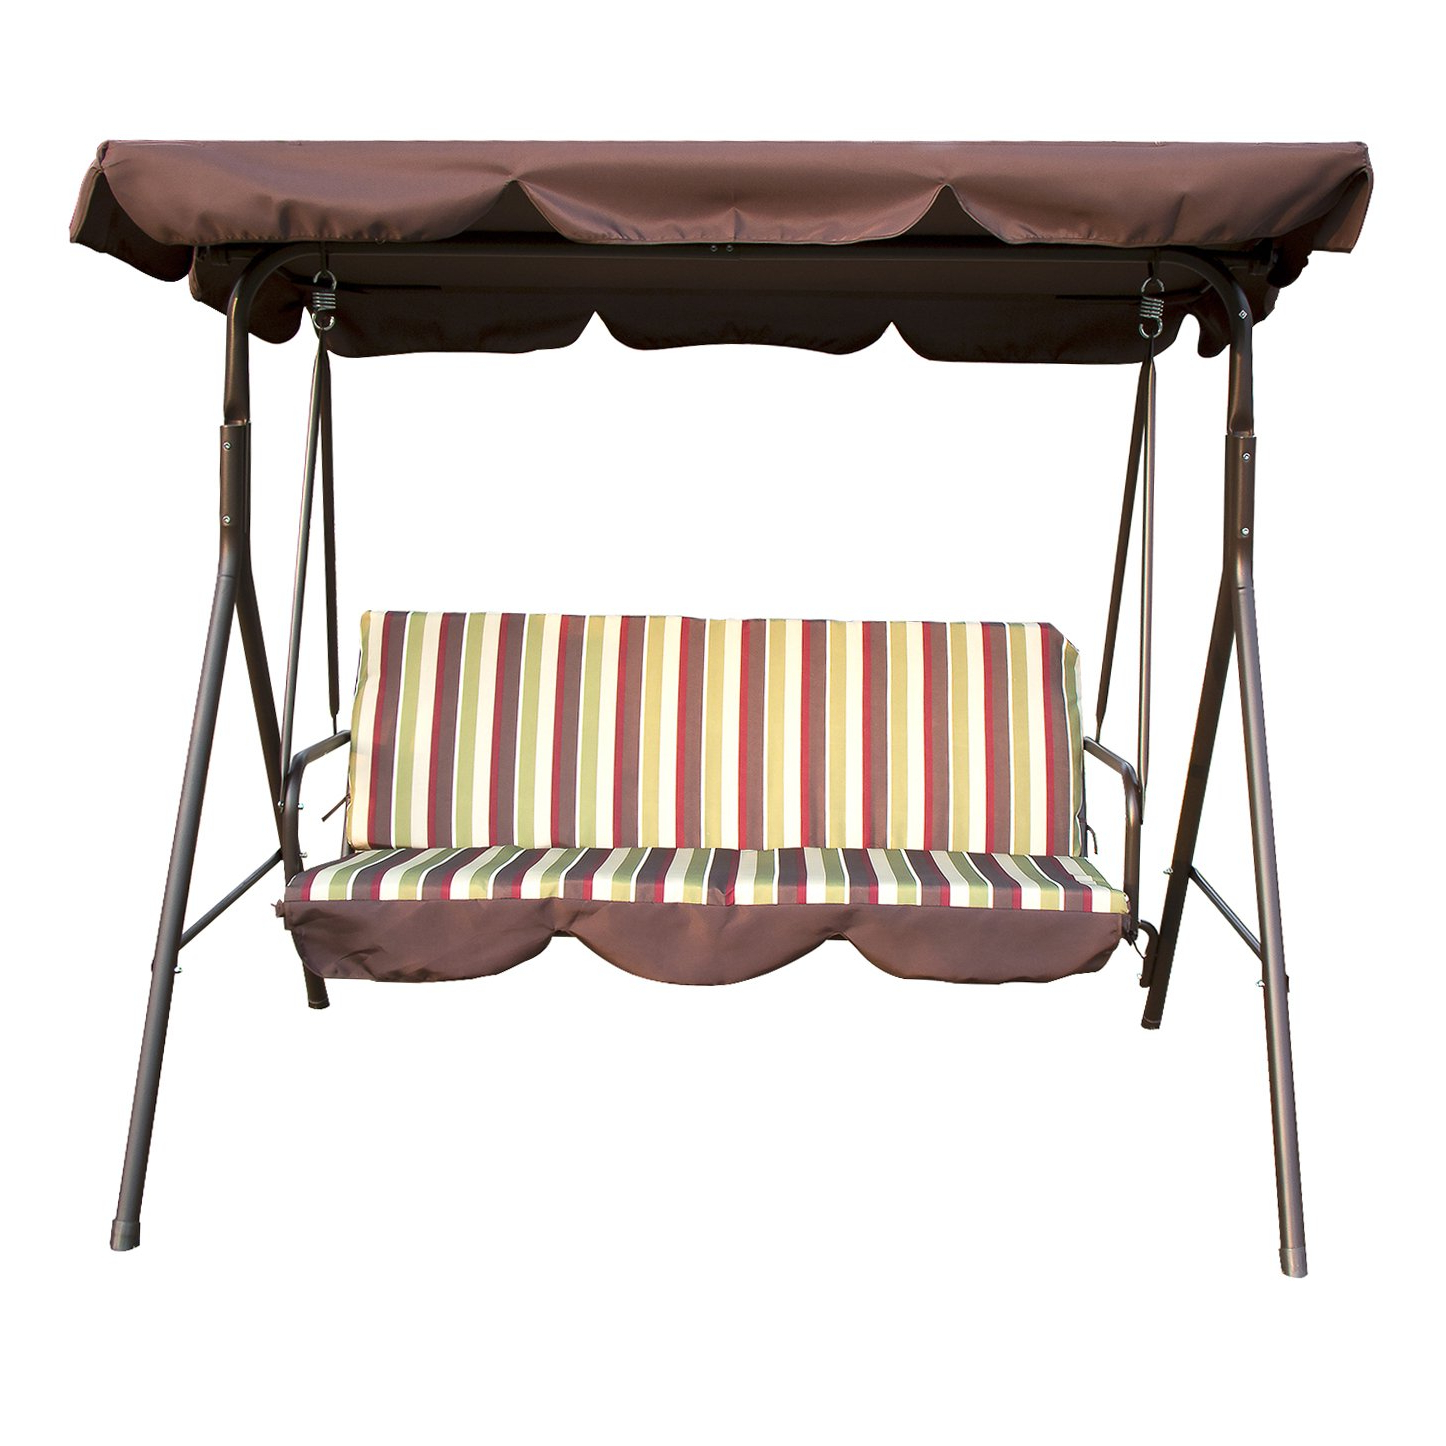 Well Known Sliverylake Outdoor 3 Person Porch Swing Glider Hammock Chair Patio  Backyard Furniture Cushioned Steel Frame With 3 Seats Patio Canopy Swing Gliders Hammock Cushioned Steel Frame (View 27 of 30)